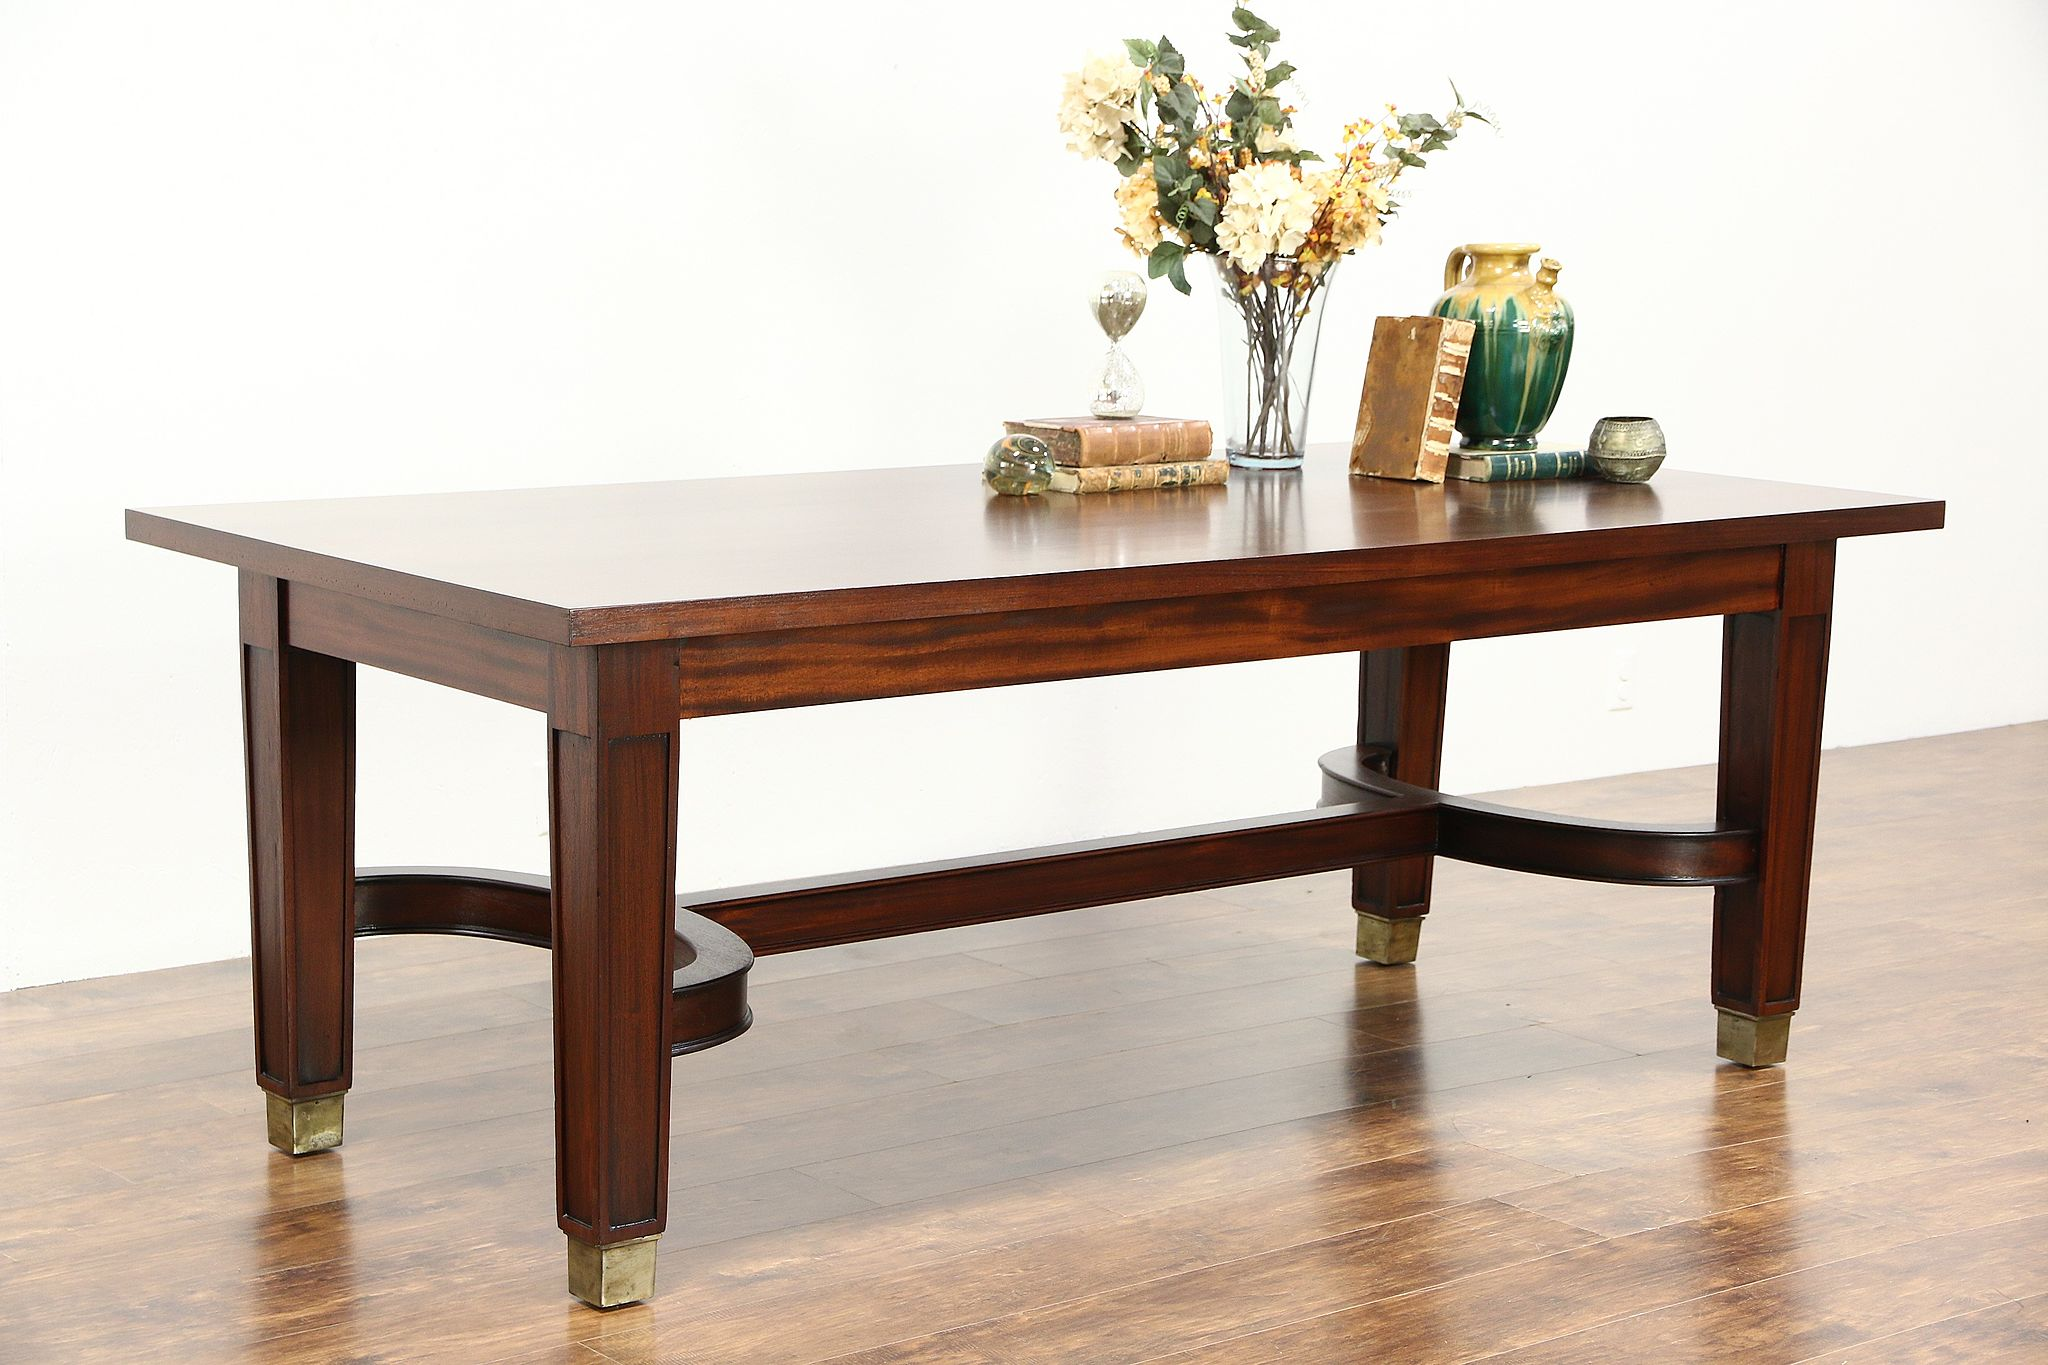 Mahogany 1930 s Vintage 7 Conference or Library Table or Writing